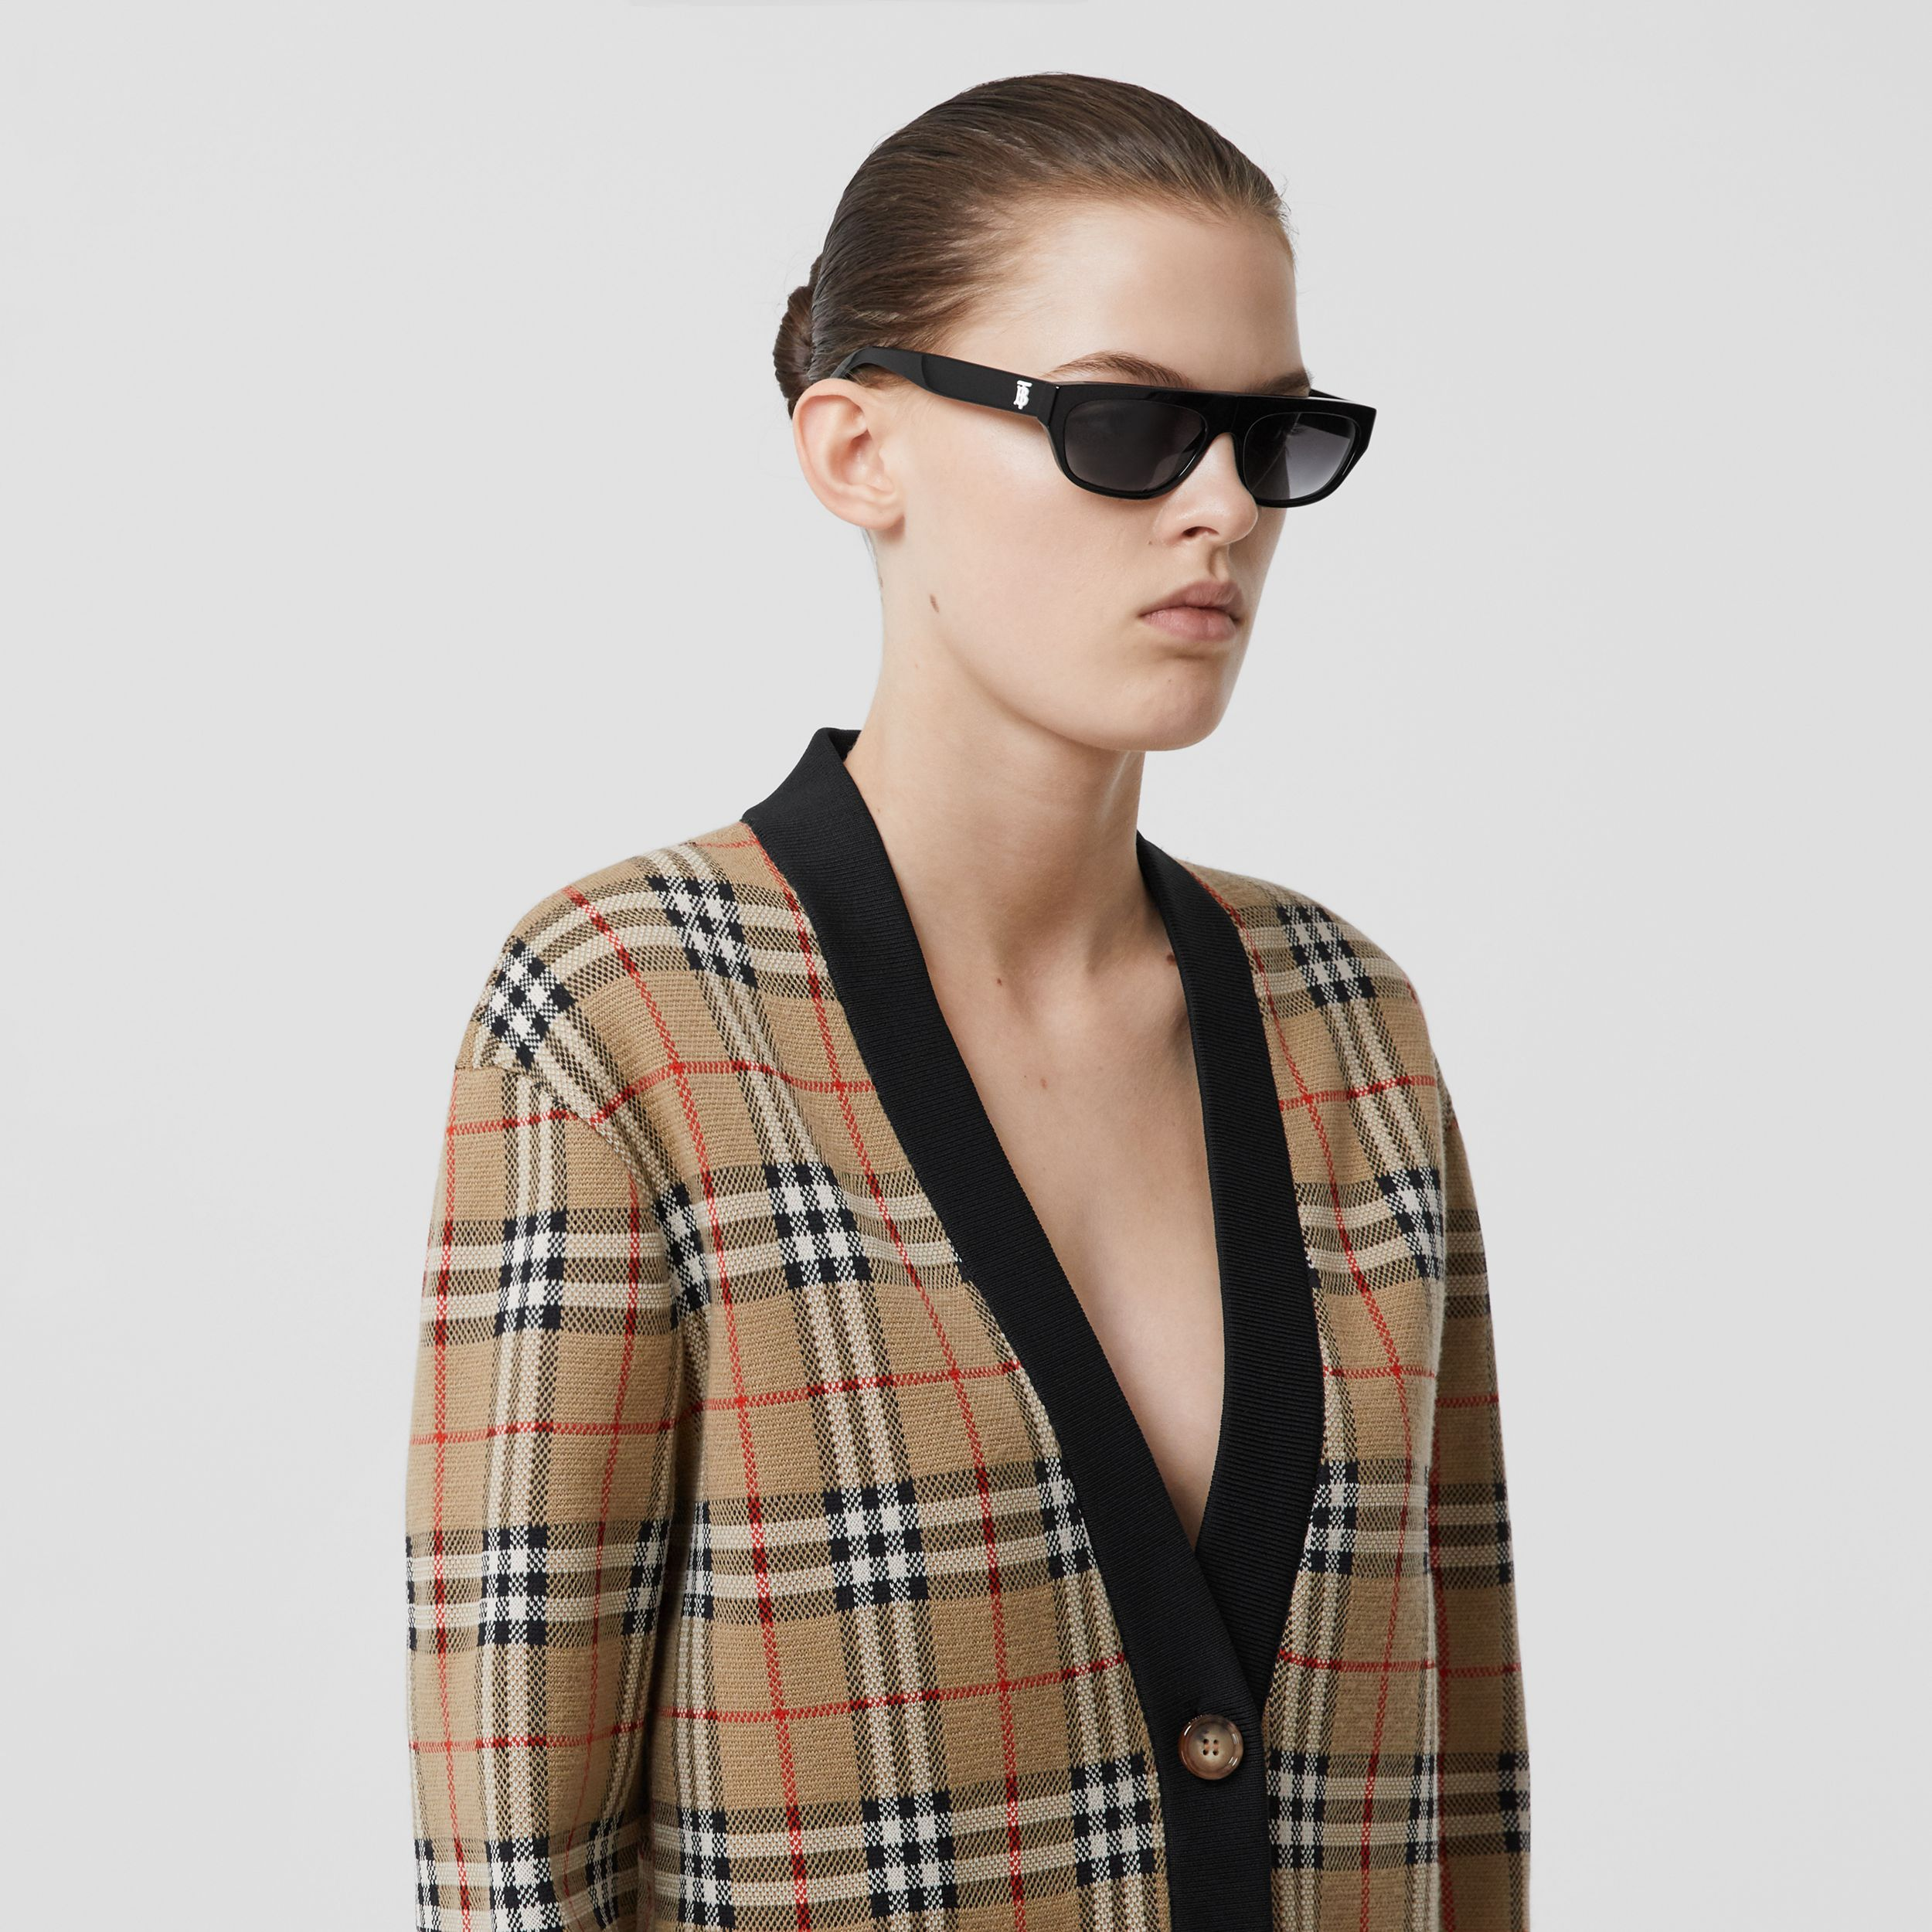 Vintage Check Merino Wool Blend Jacquard Cardigan in Archive Beige - Women | Burberry - 2